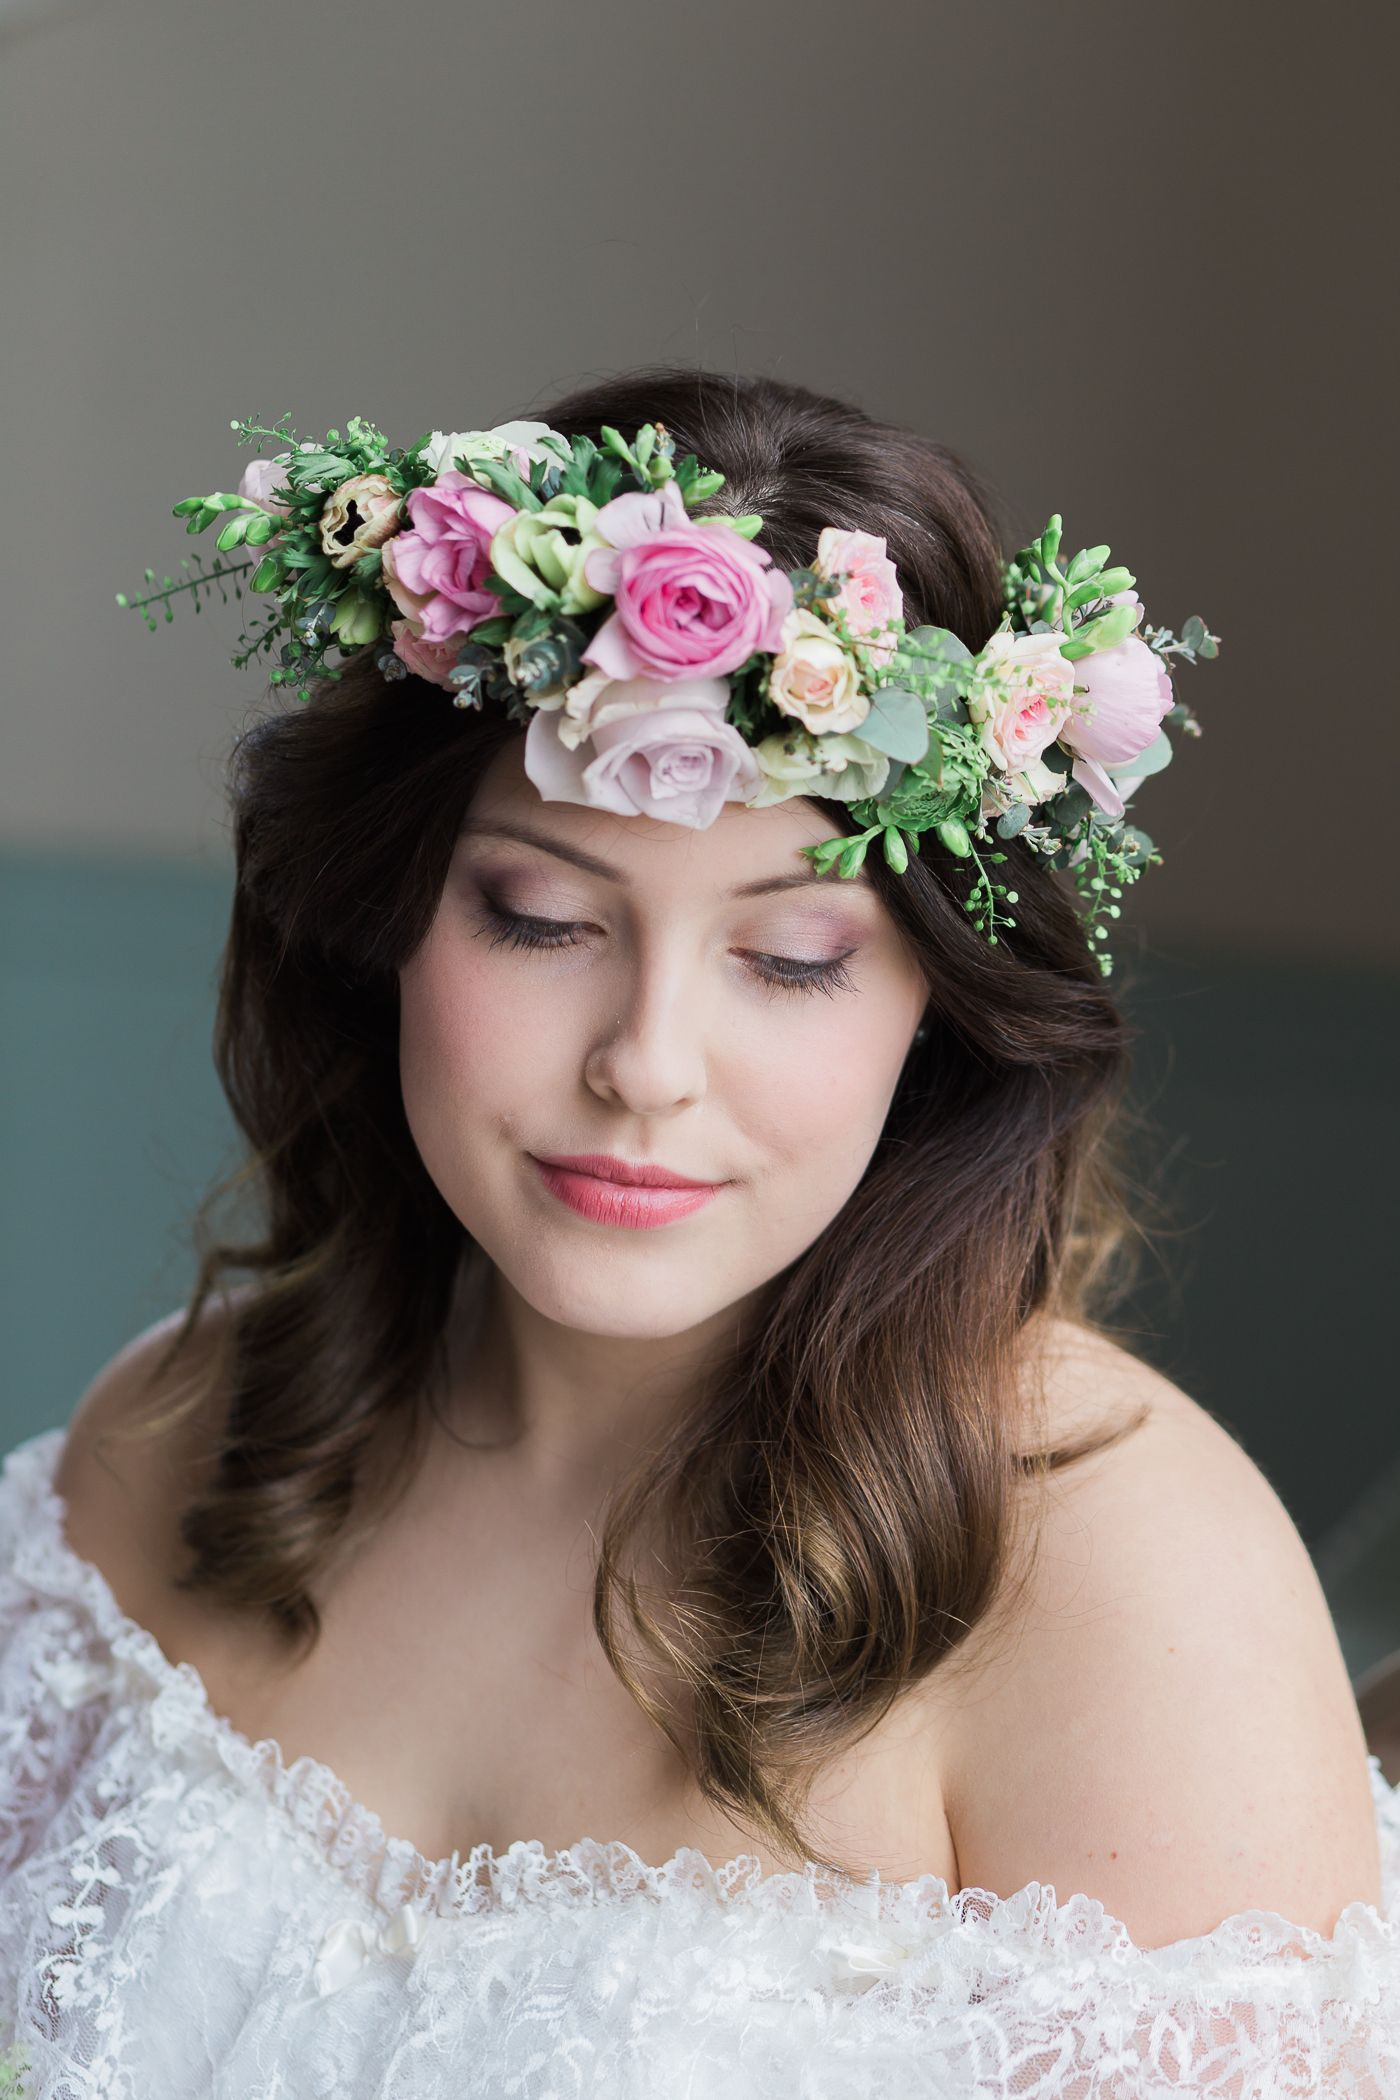 Bride with fresh flower crown and lace dress weddingcrowns bride with fresh flower crown and lace dress weddingcrowns izmirmasajfo